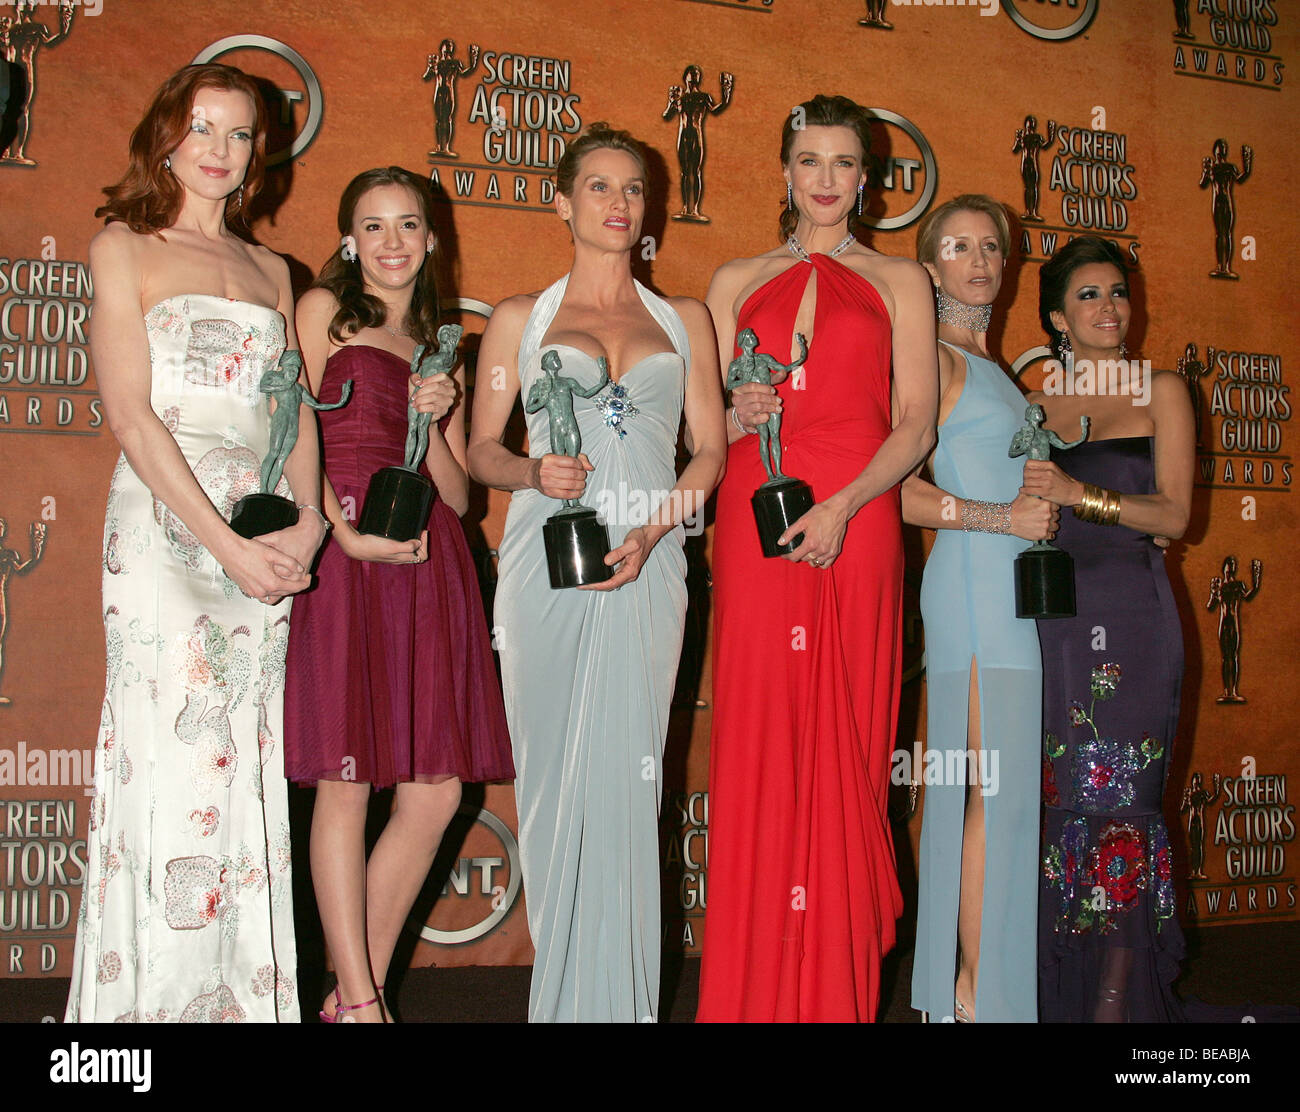 Desperate Housewives Cast Winners For Outstanding Ensemble In A Stock Photo Alamy Desperate housewives somehow stayed on the air until 2012 — and those few last years were not pretty, onscreen or off — but we prefer to remember the show as it was during. https www alamy com stock photo desperate housewives cast winners for outstanding ensemble in a comedy 26044210 html